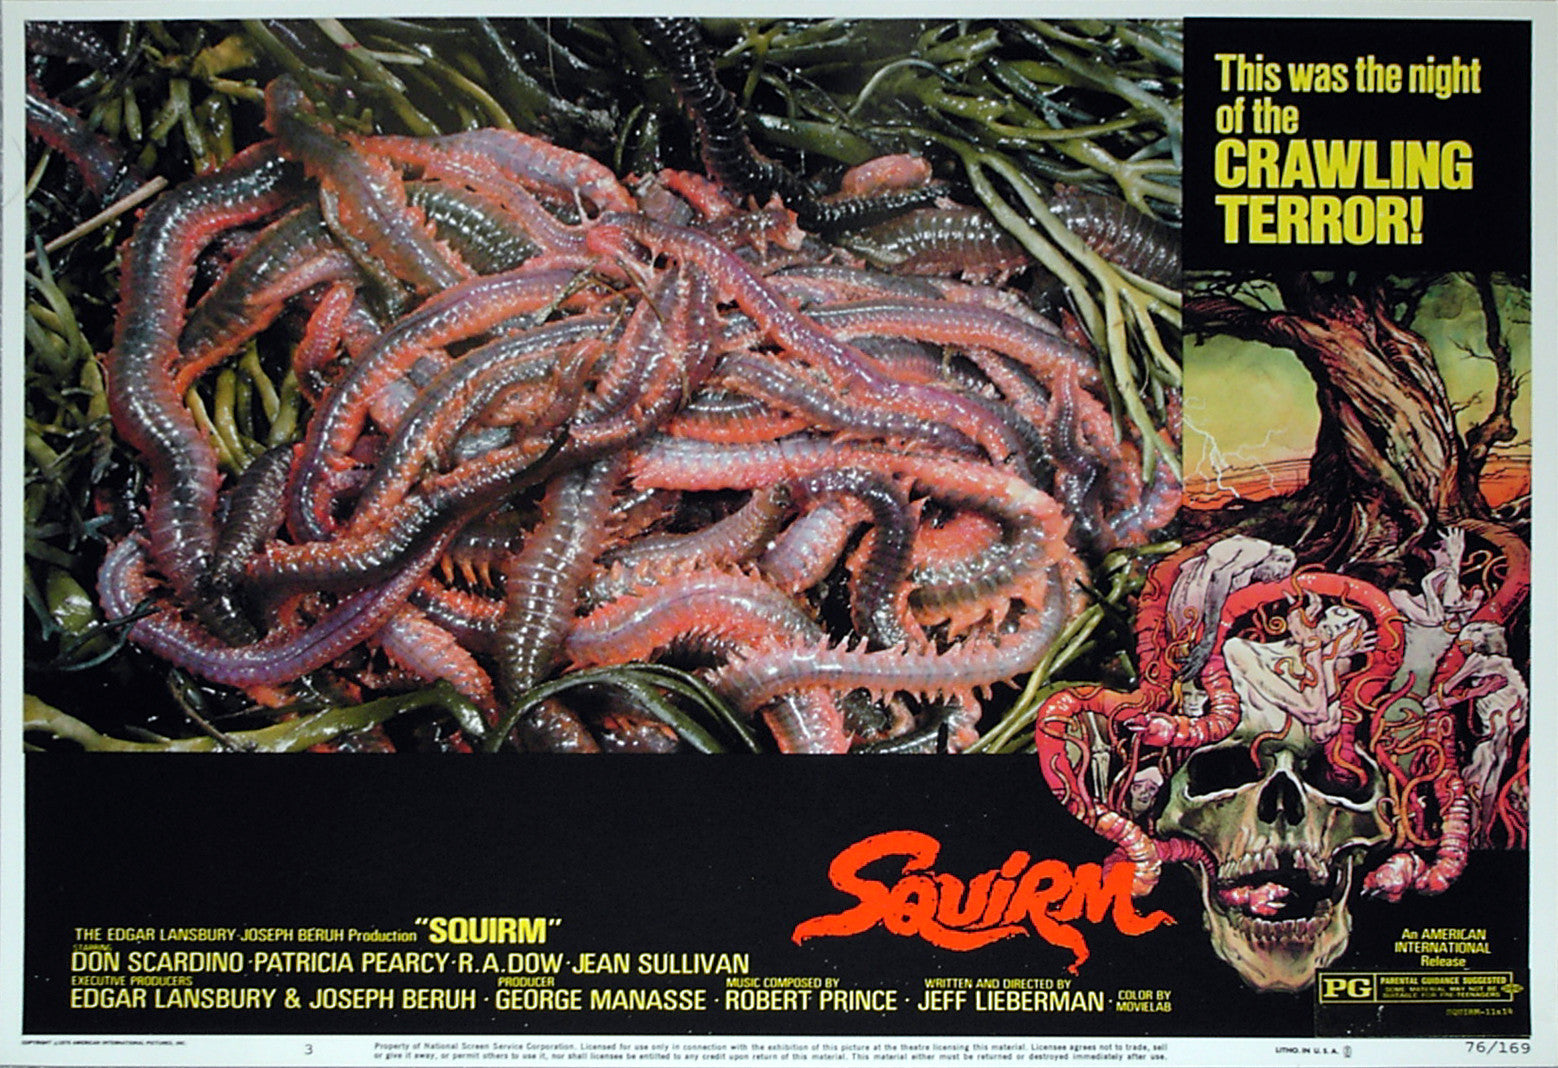 SQUIRM - US lobby card v3